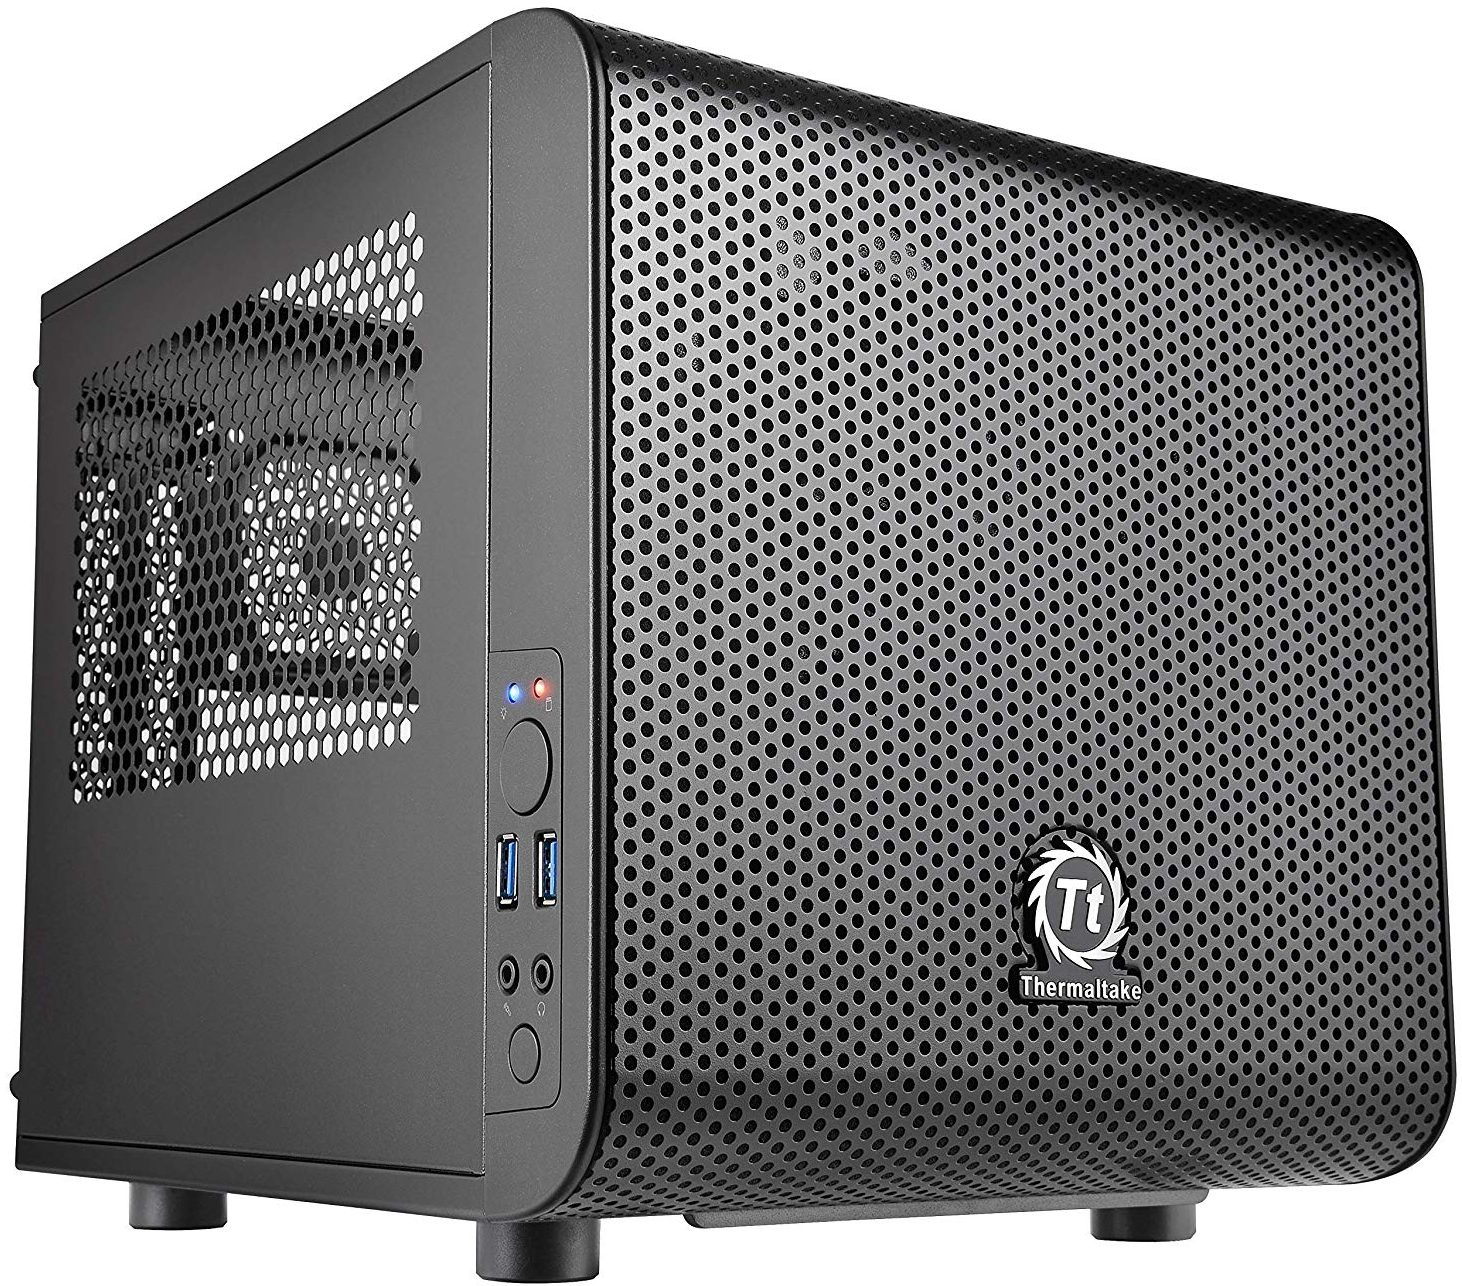 Thermaltake Suppressor F1 Mini ITX Tt LCS Certified Cube Computer Chassis